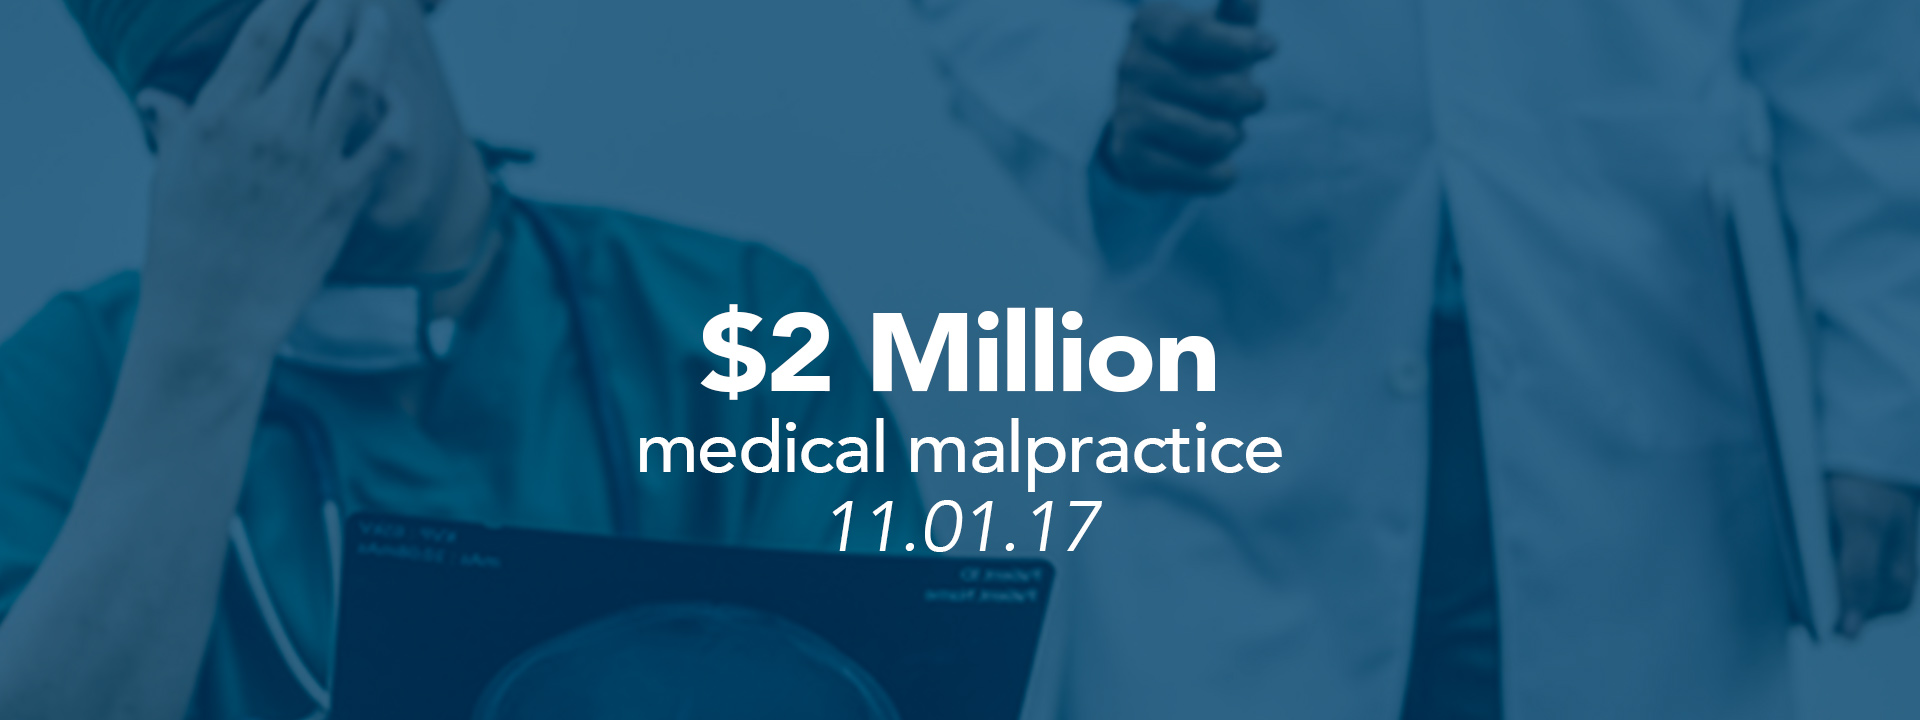 medical malpractice recovery